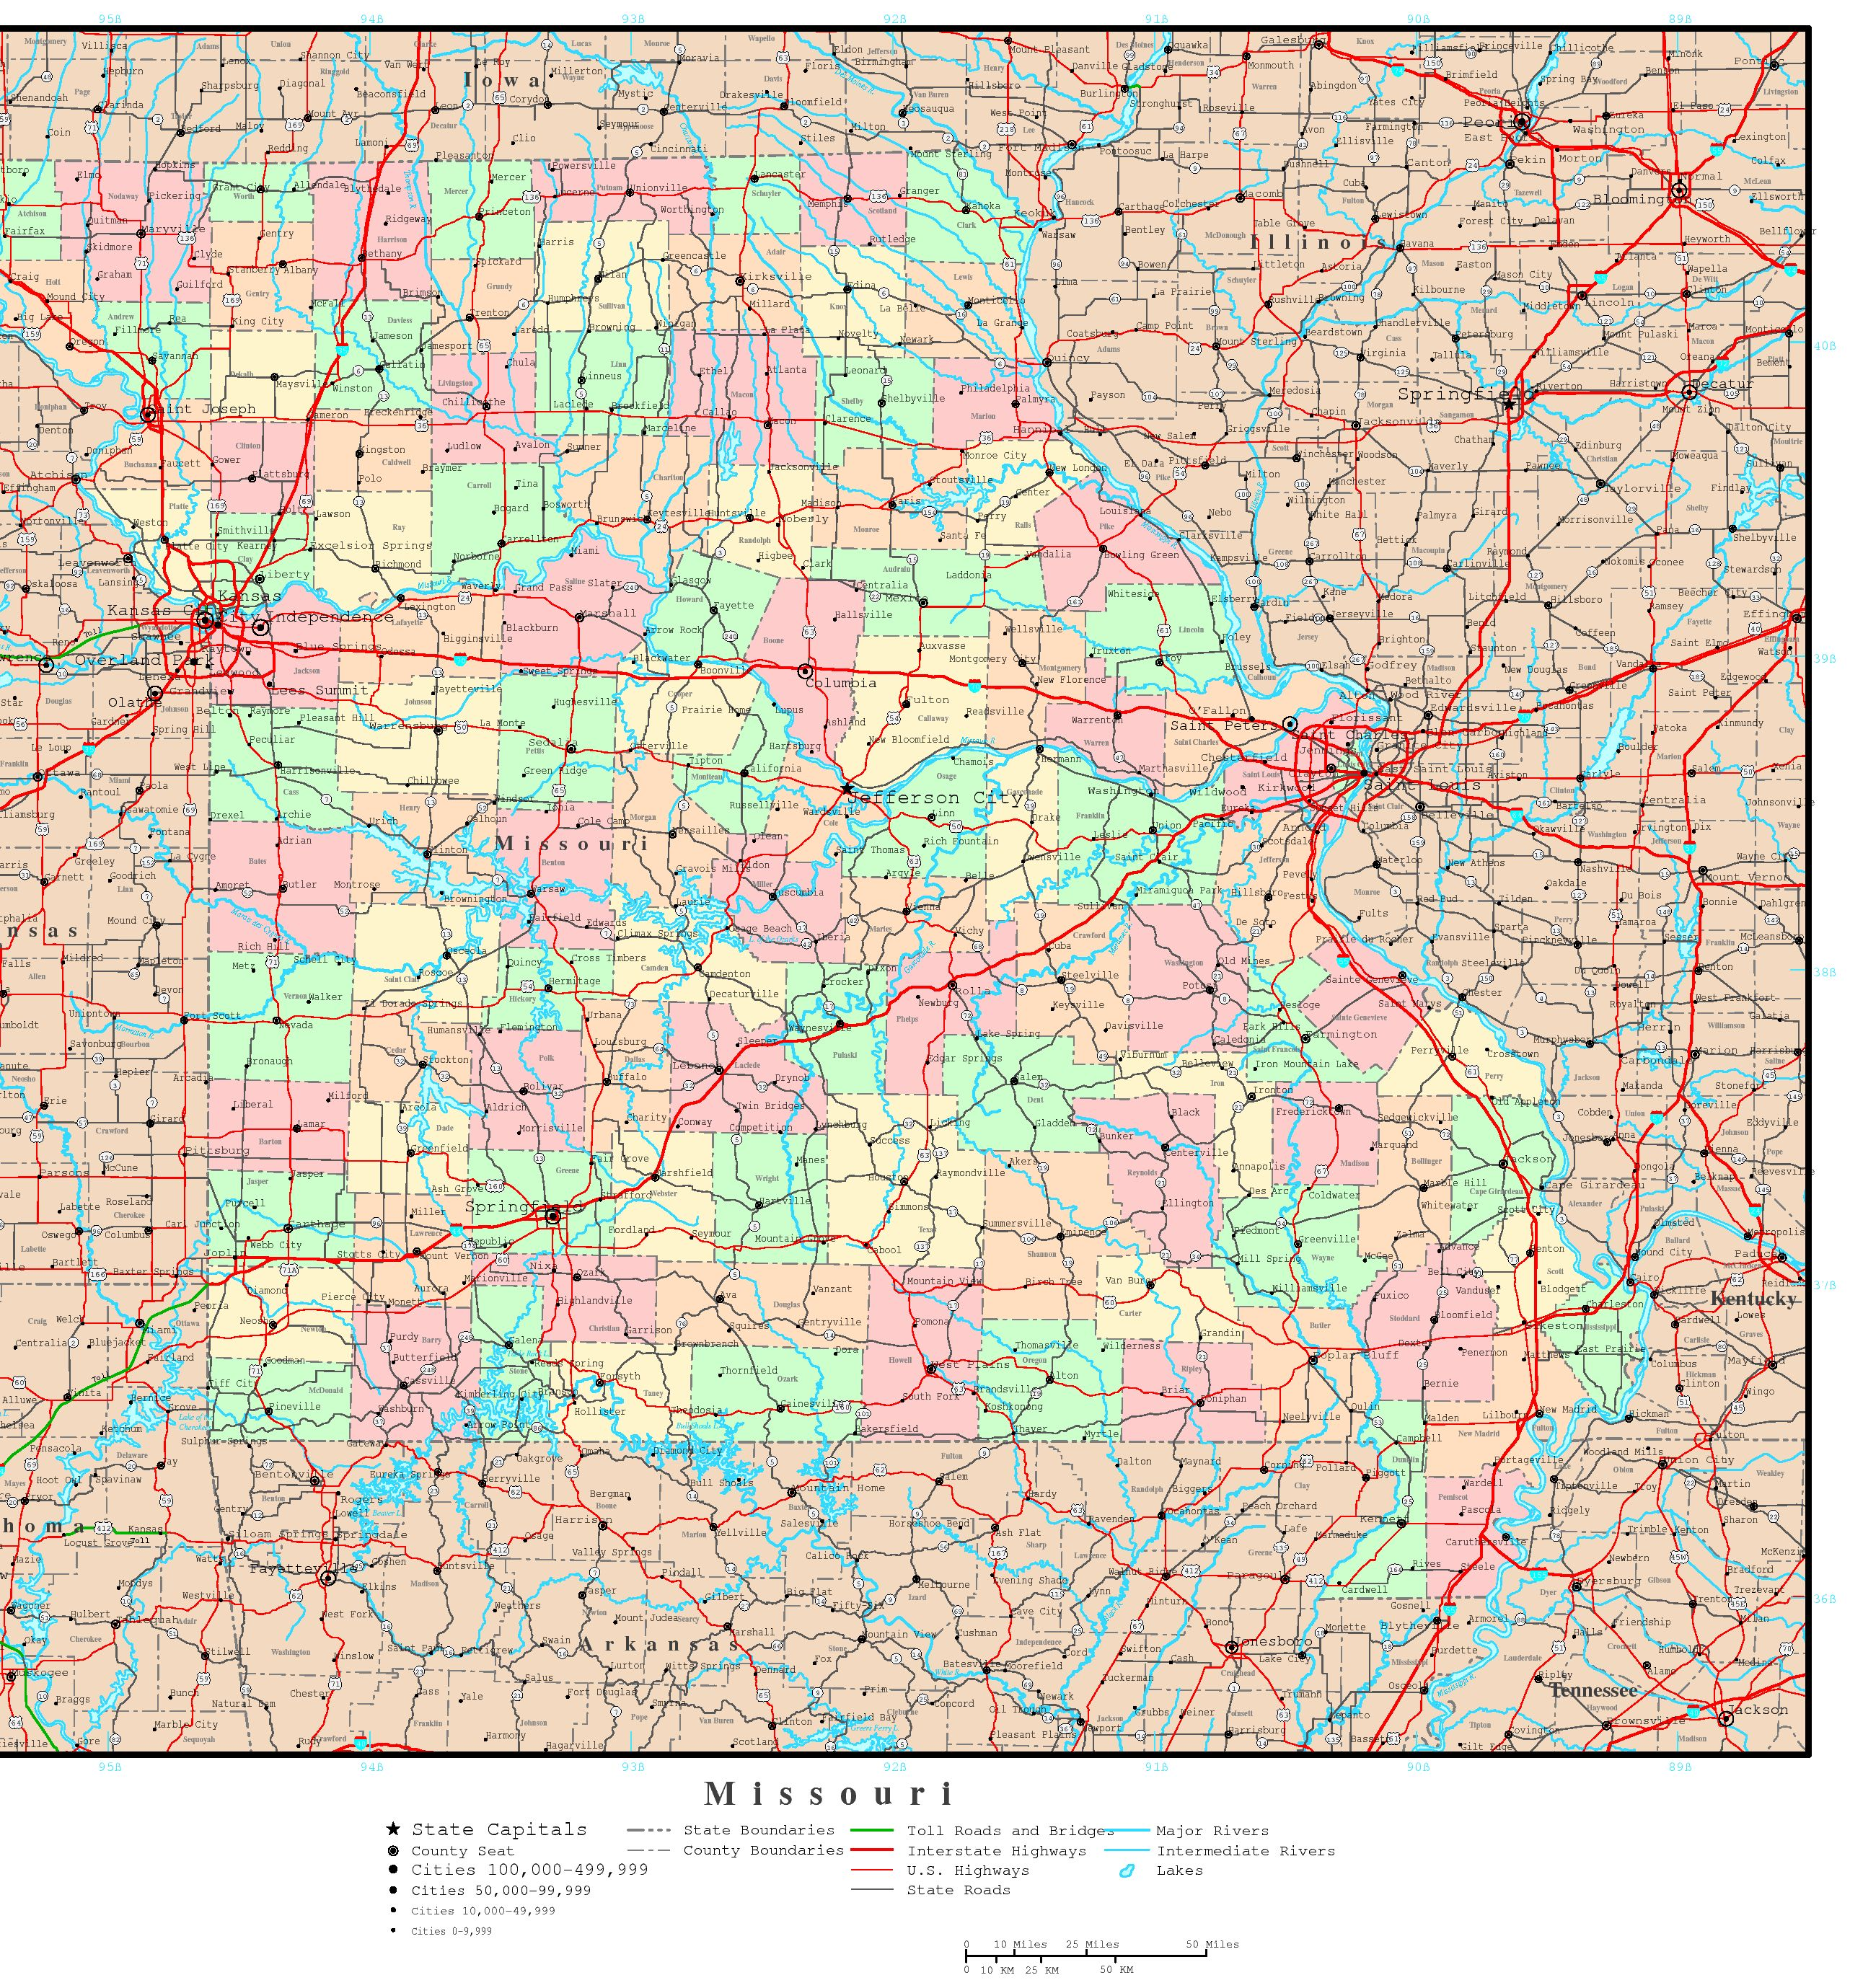 Missouri Political Map - Missouri county map